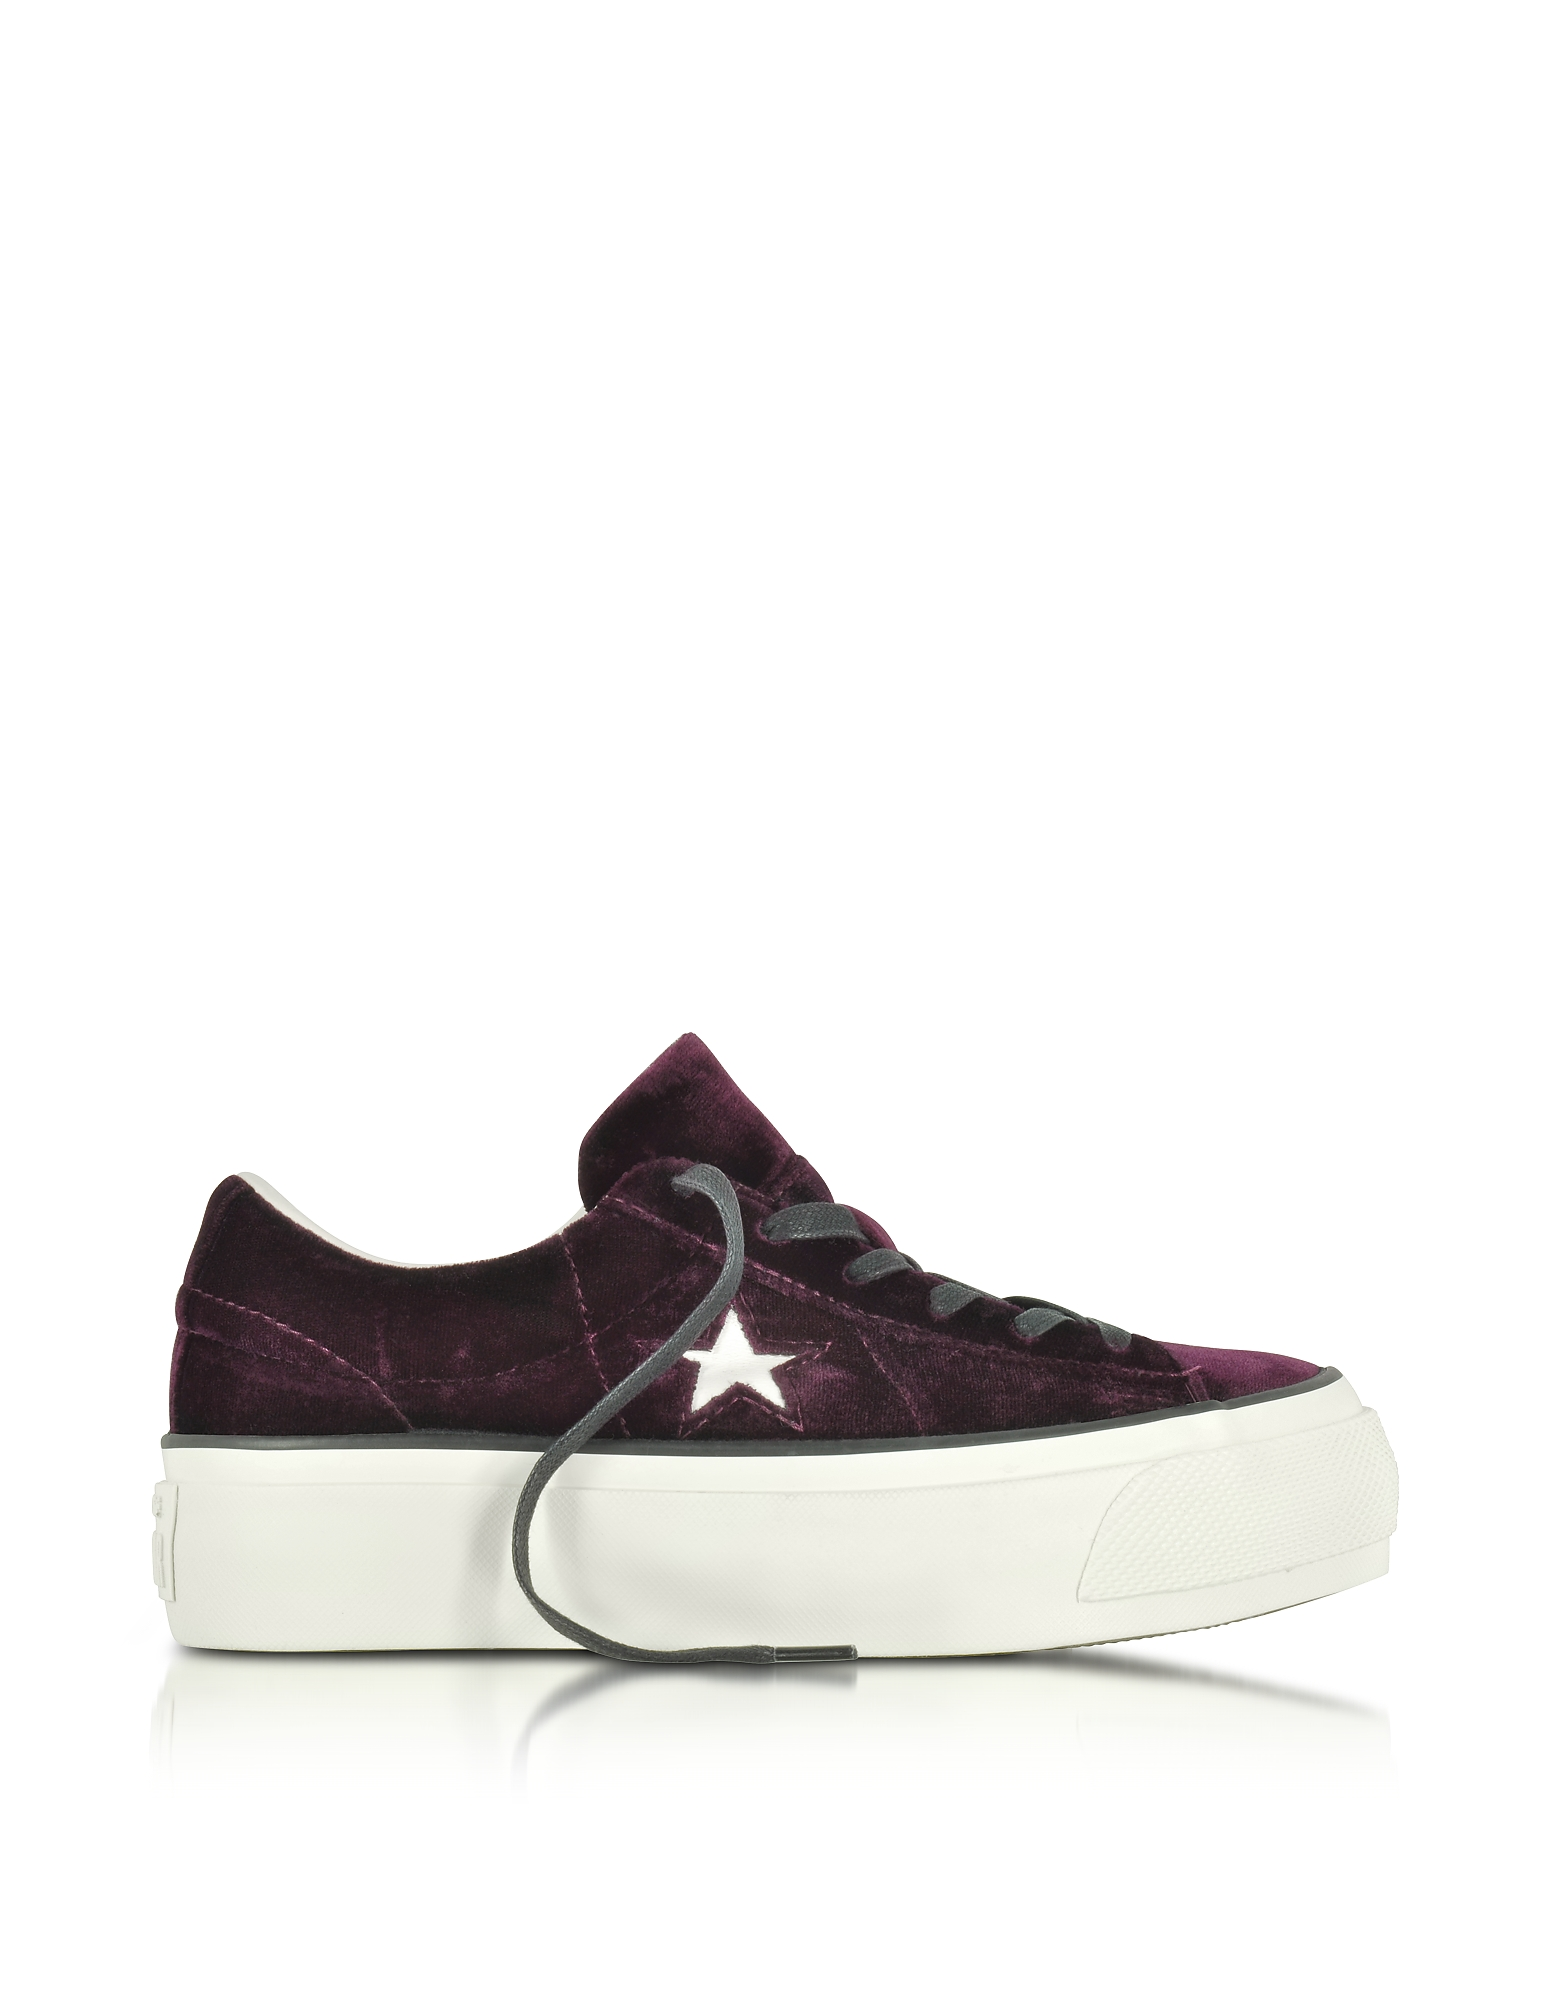 Converse Limited Edition Shoes, One Star Ox Eclipse Port Wine Velvet Flatform Sneakers